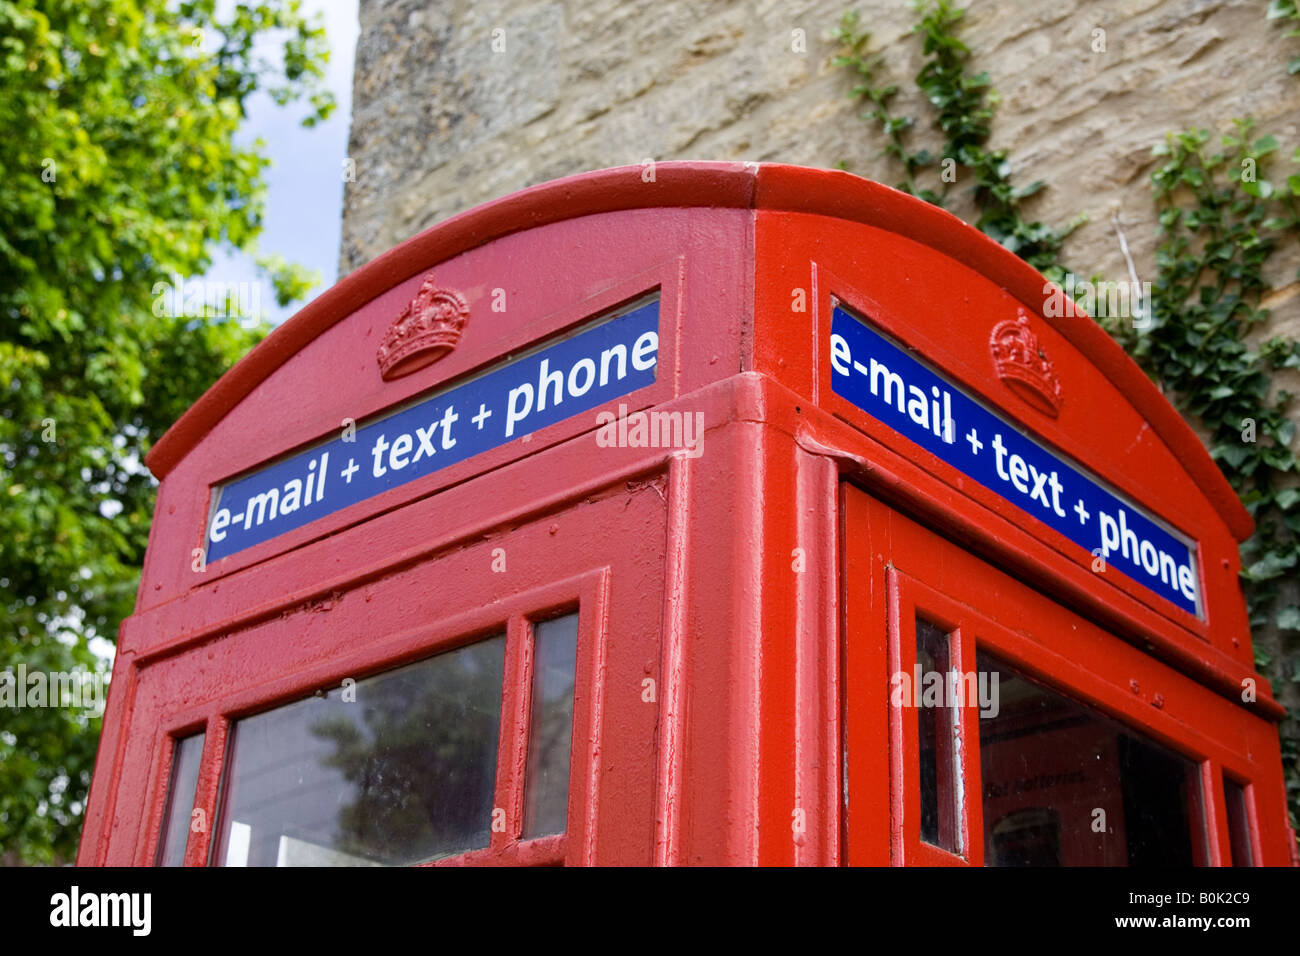 Telephone email and text booth in the Cotswolds United Kingdom - Stock Image